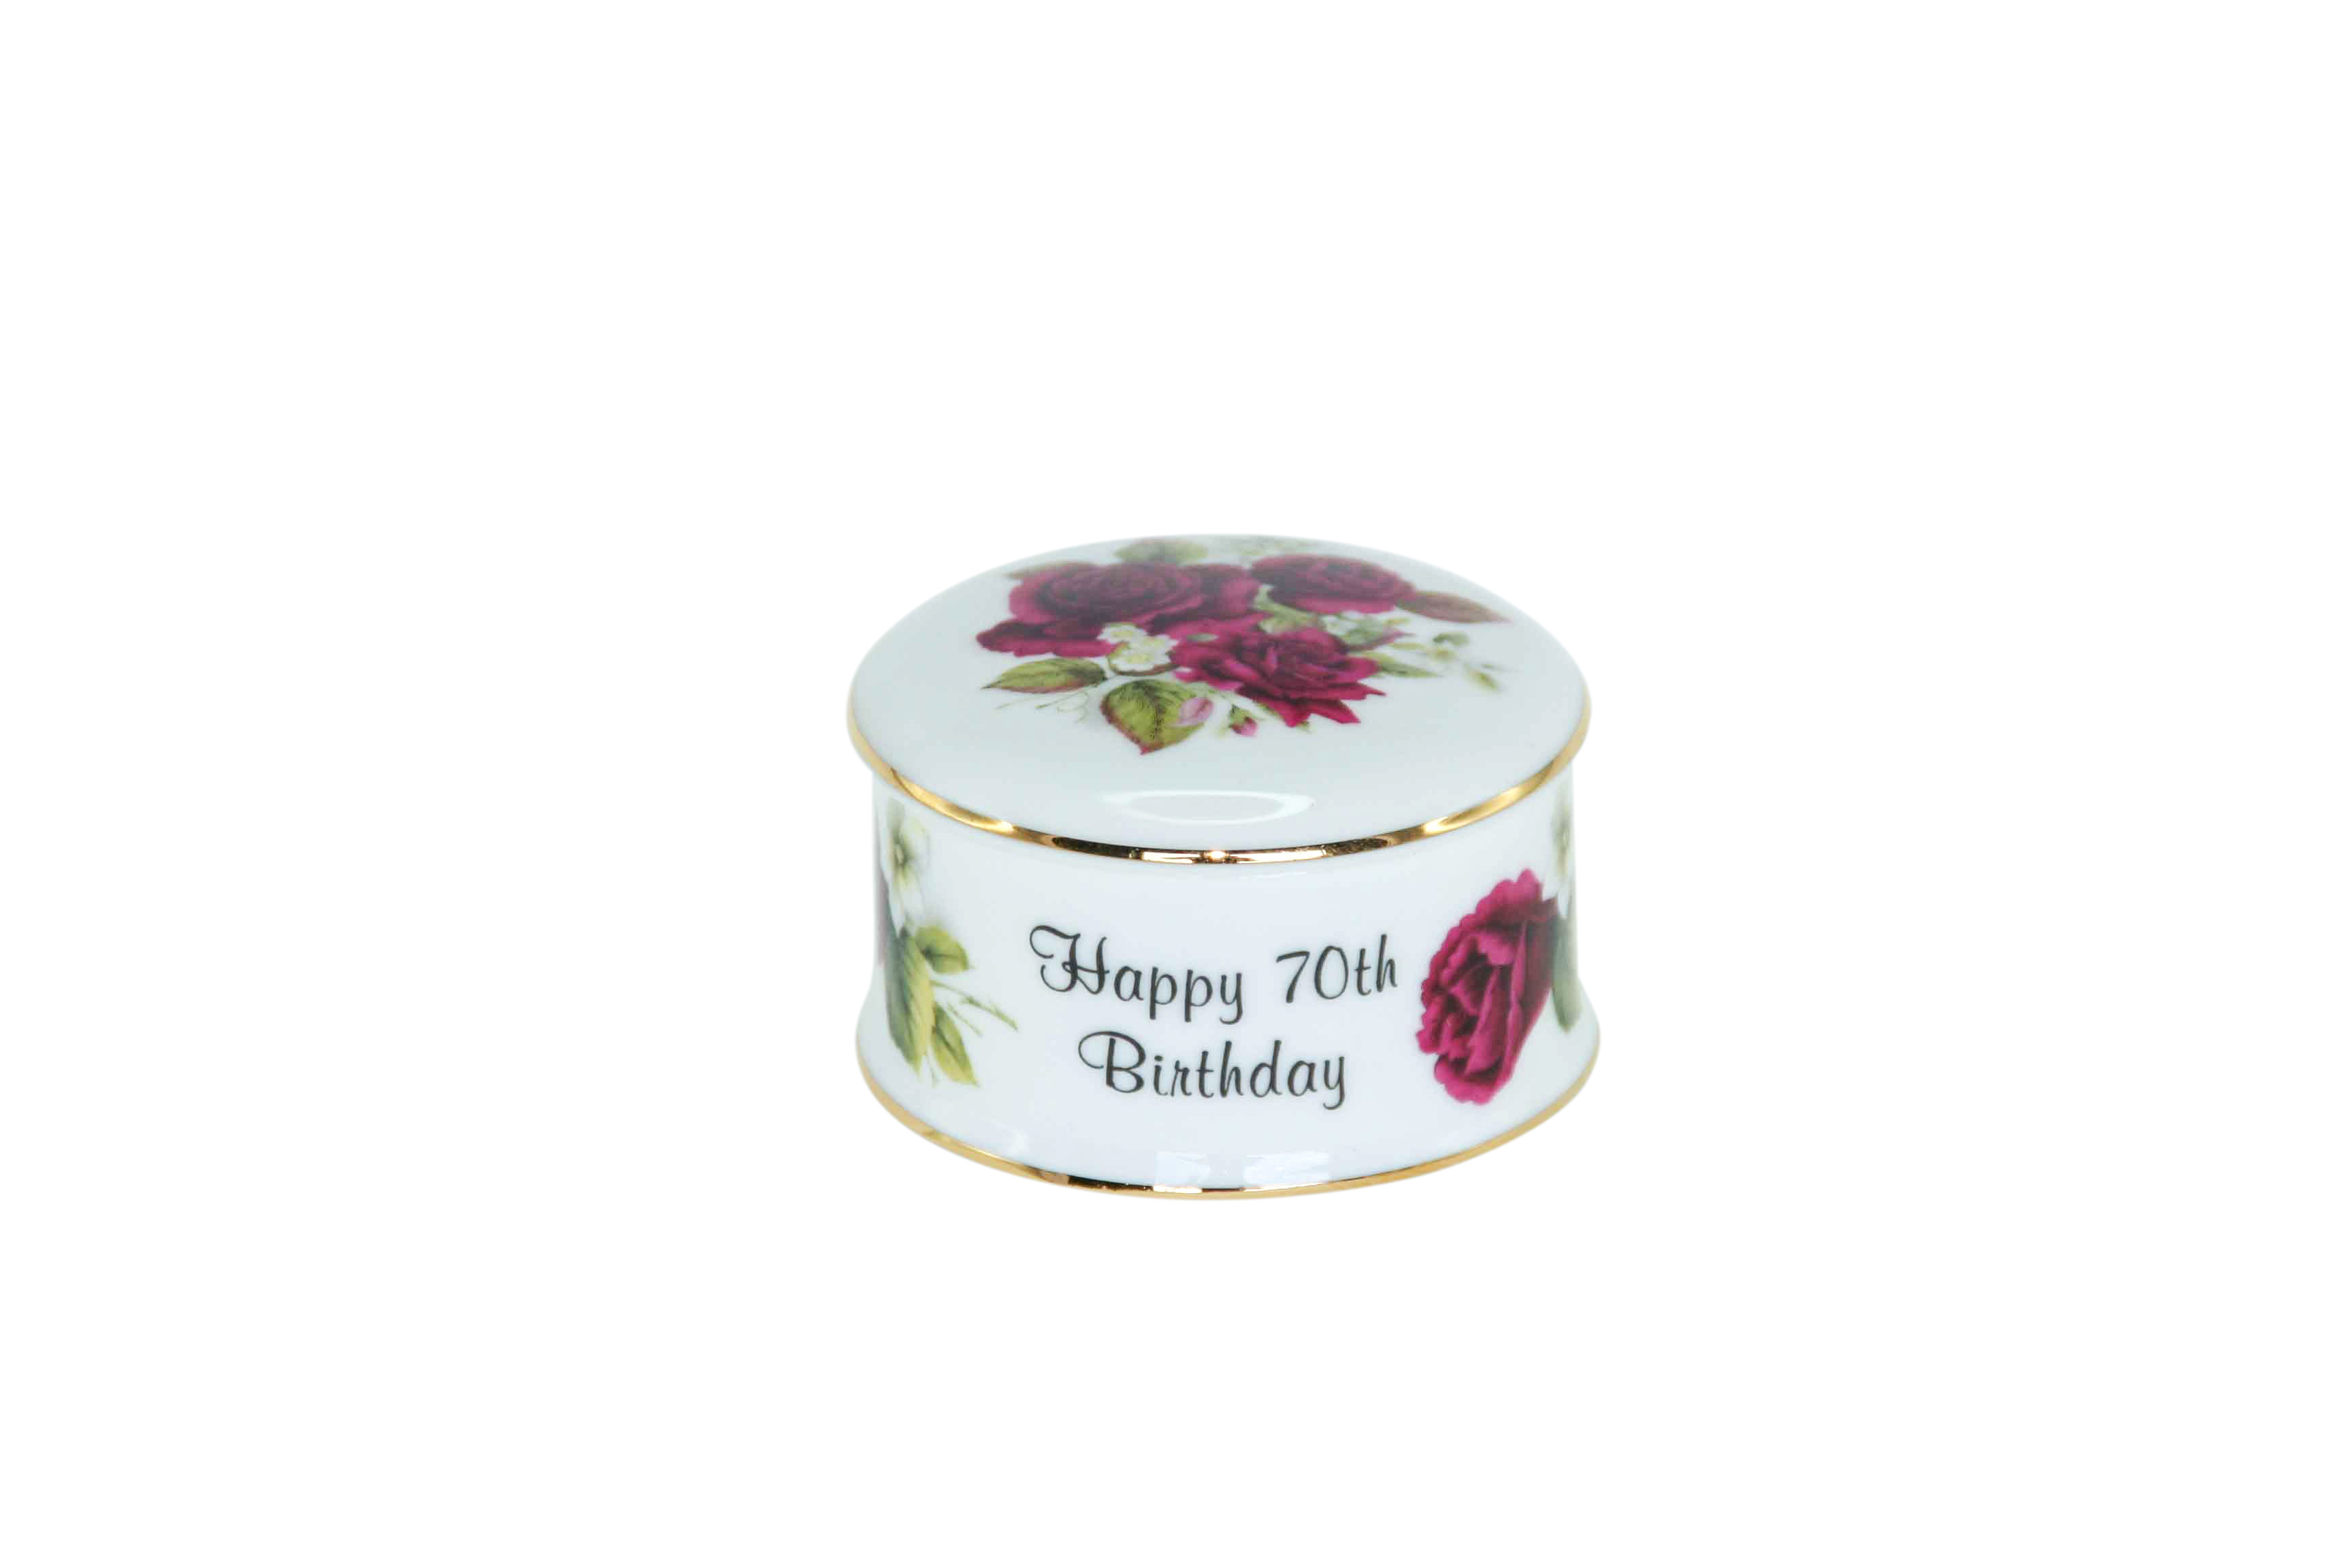 70th Birthday Trinket Box